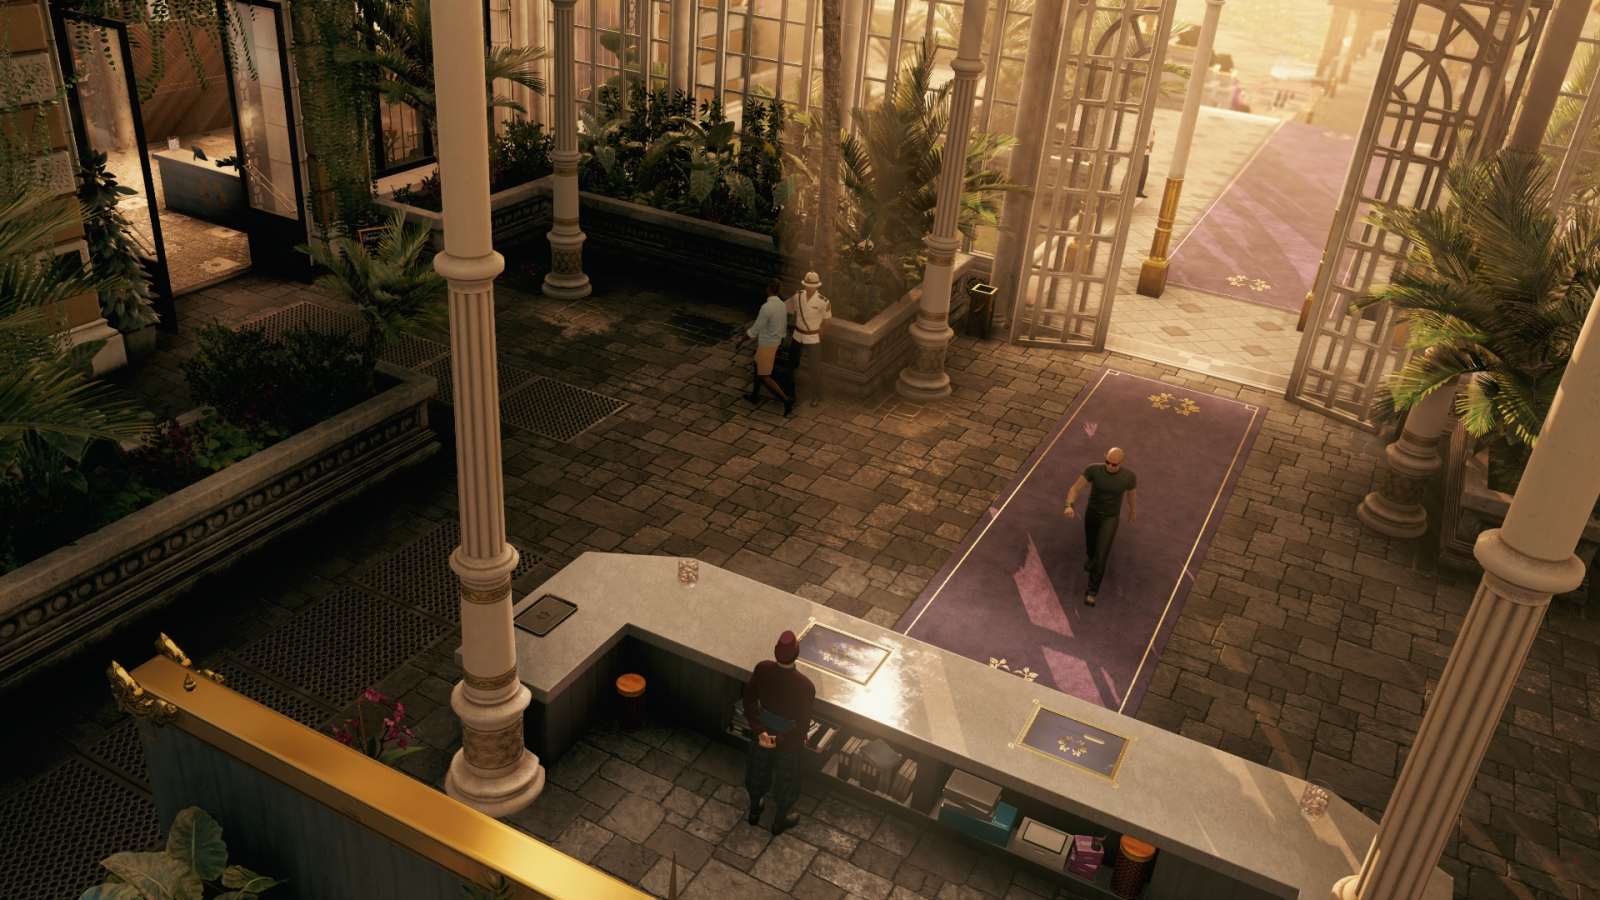 Hitman Episode 4 Bangkok Review A Hotel Getaway To Die For